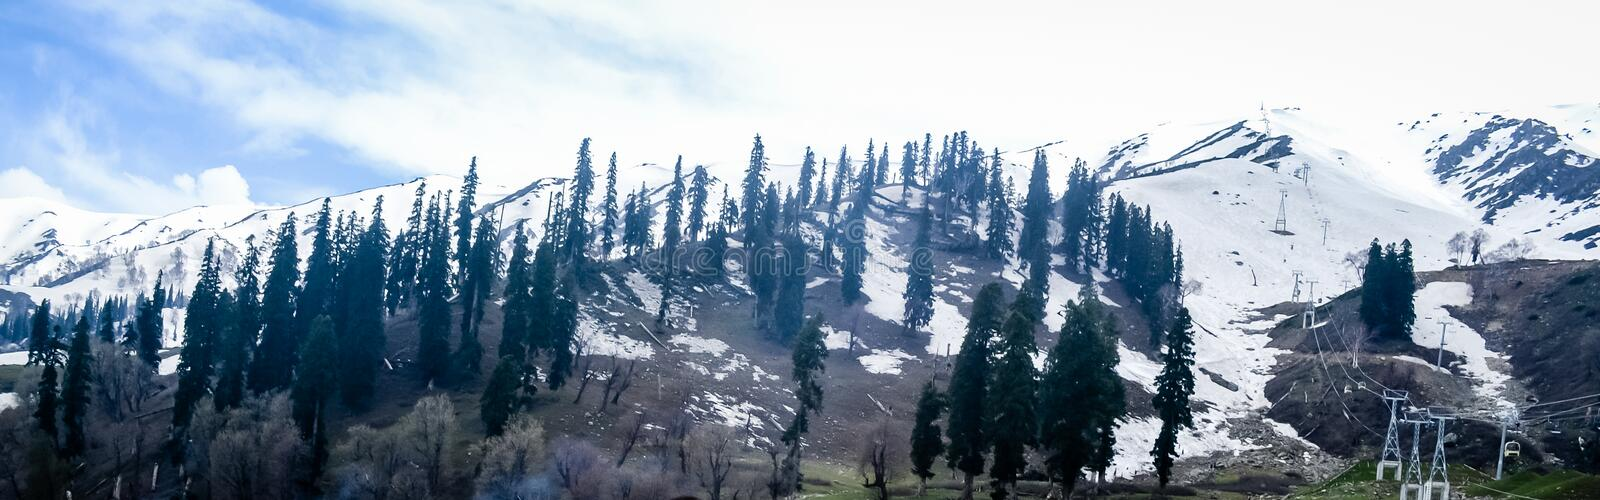 Deep Snow covered Himalayan mountain and Winter white forest landscape view. Inspirational Panorama view. Christmas Holiday season royalty free stock images